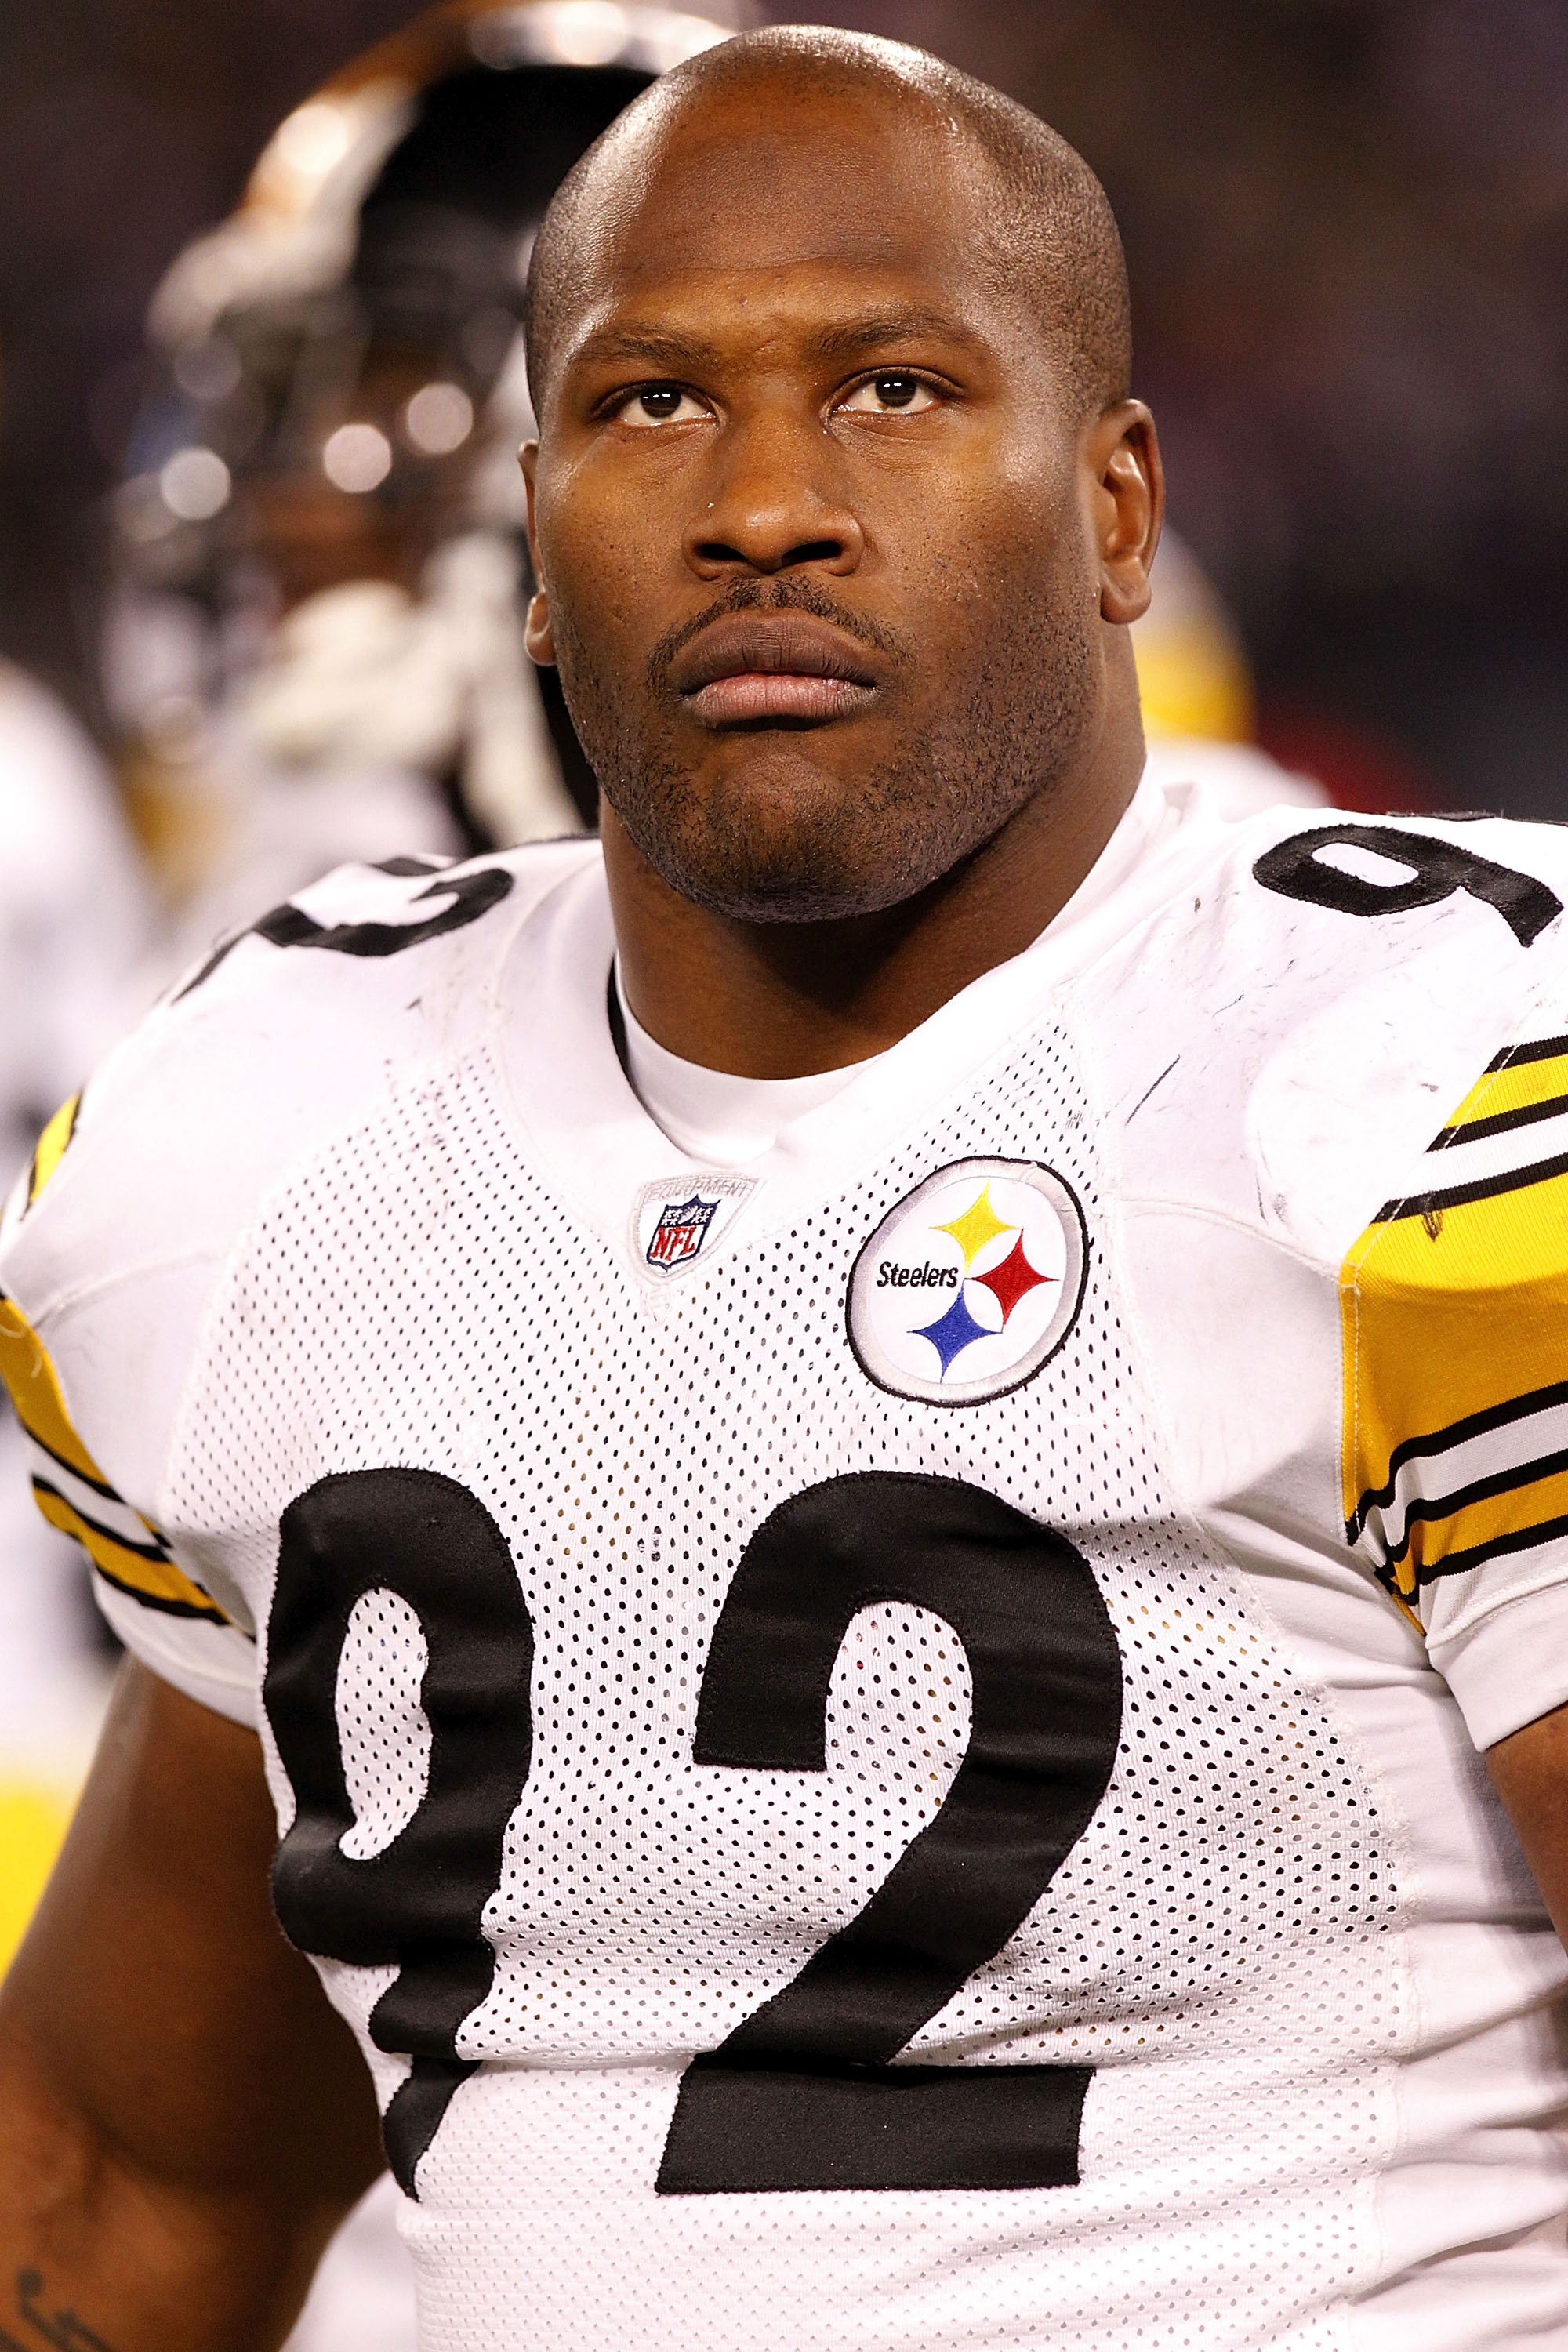 BALTIMORE, MD - DECEMBER 05:  James Harrison #92 of the Pittsburgh Steelers watches from the sidelines against the Baltimore Ravens at M&T Bank Stadium on December 5, 2010 in Baltimore, Maryland.  (Photo by Geoff Burke/Getty Images)